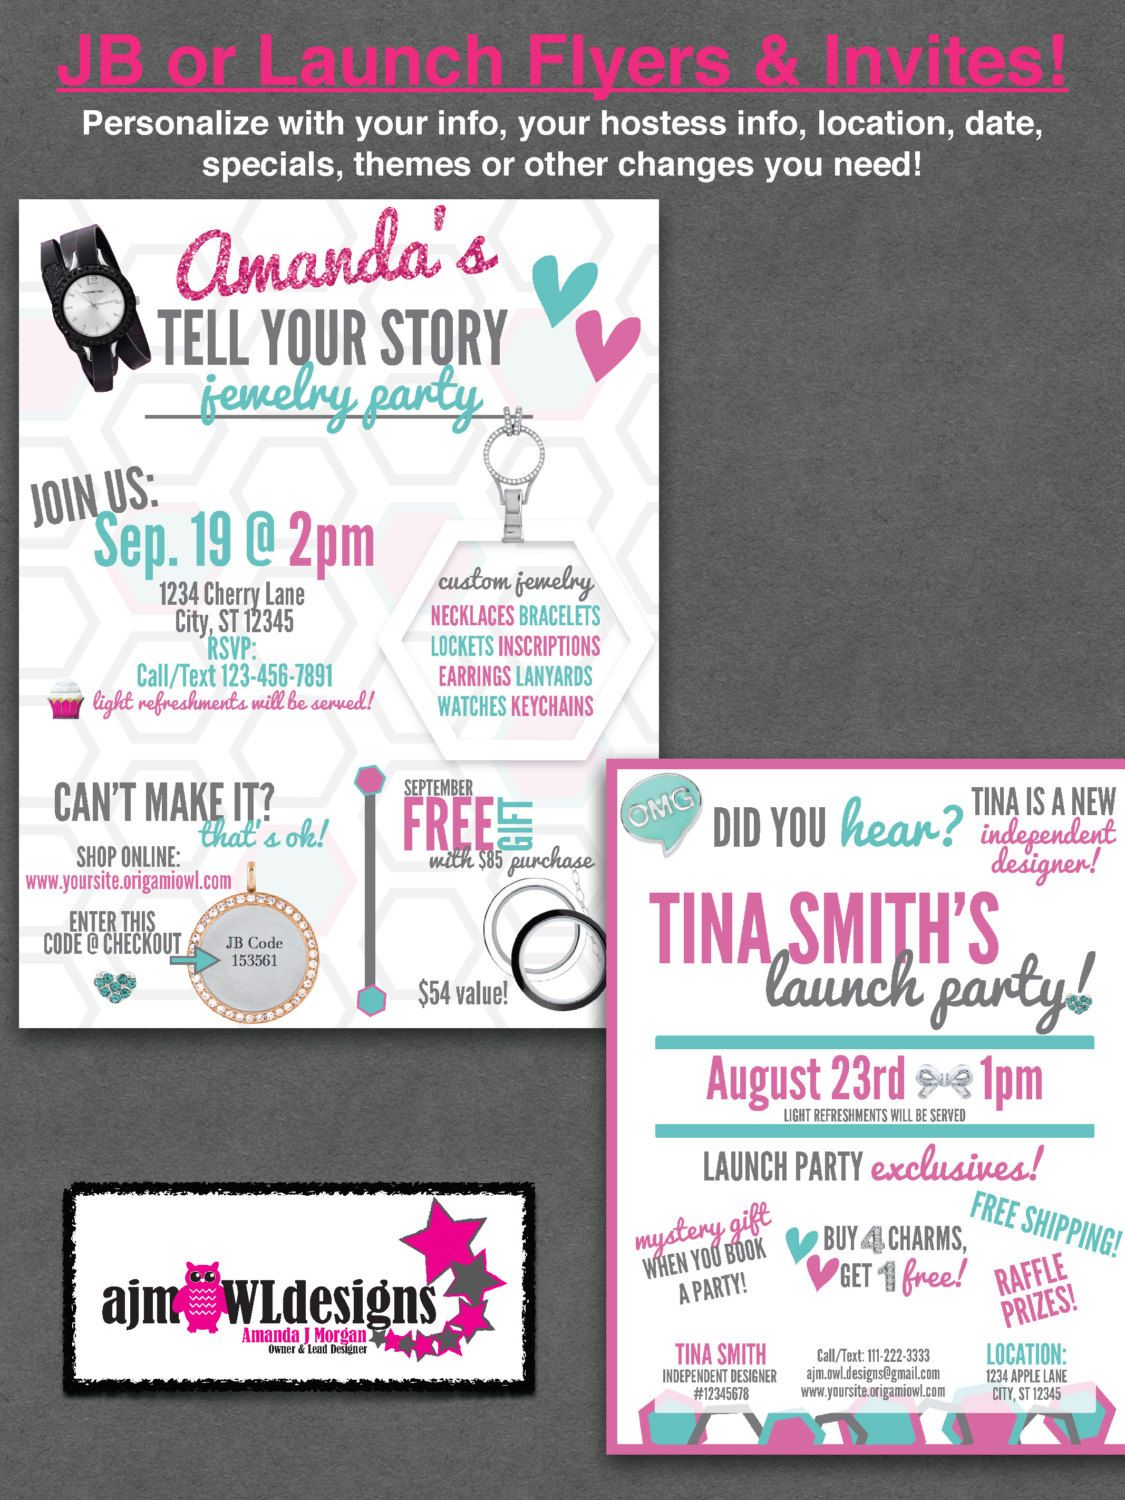 Flyers Invites Launch Party Or Jb Personalized Origami Owl